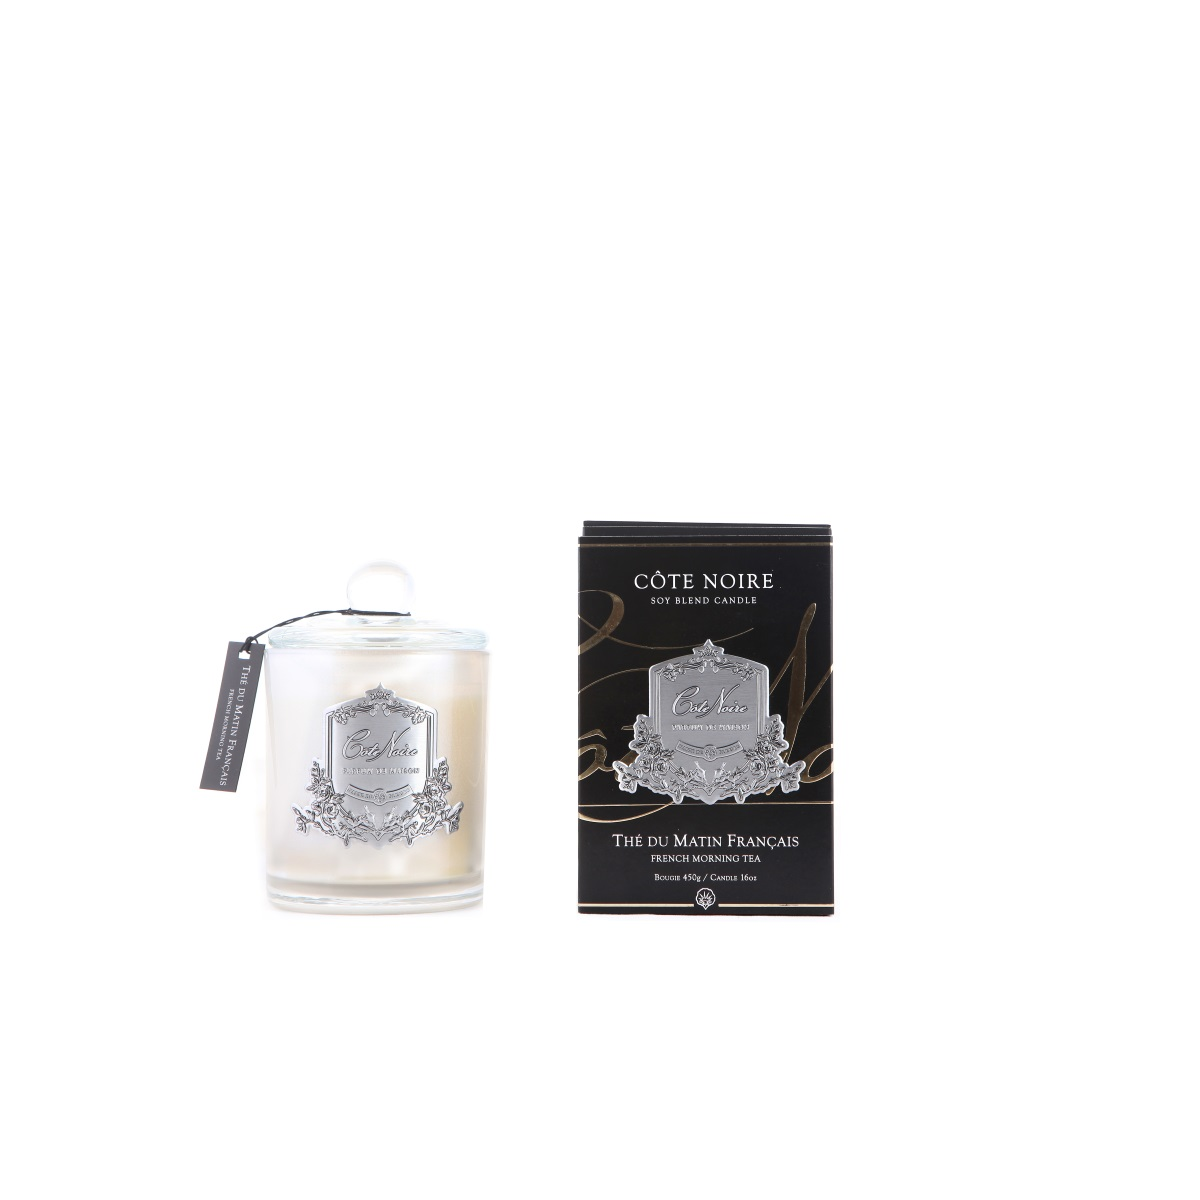 limited_edition_candle_450g_silver_glass_french_morning_tea